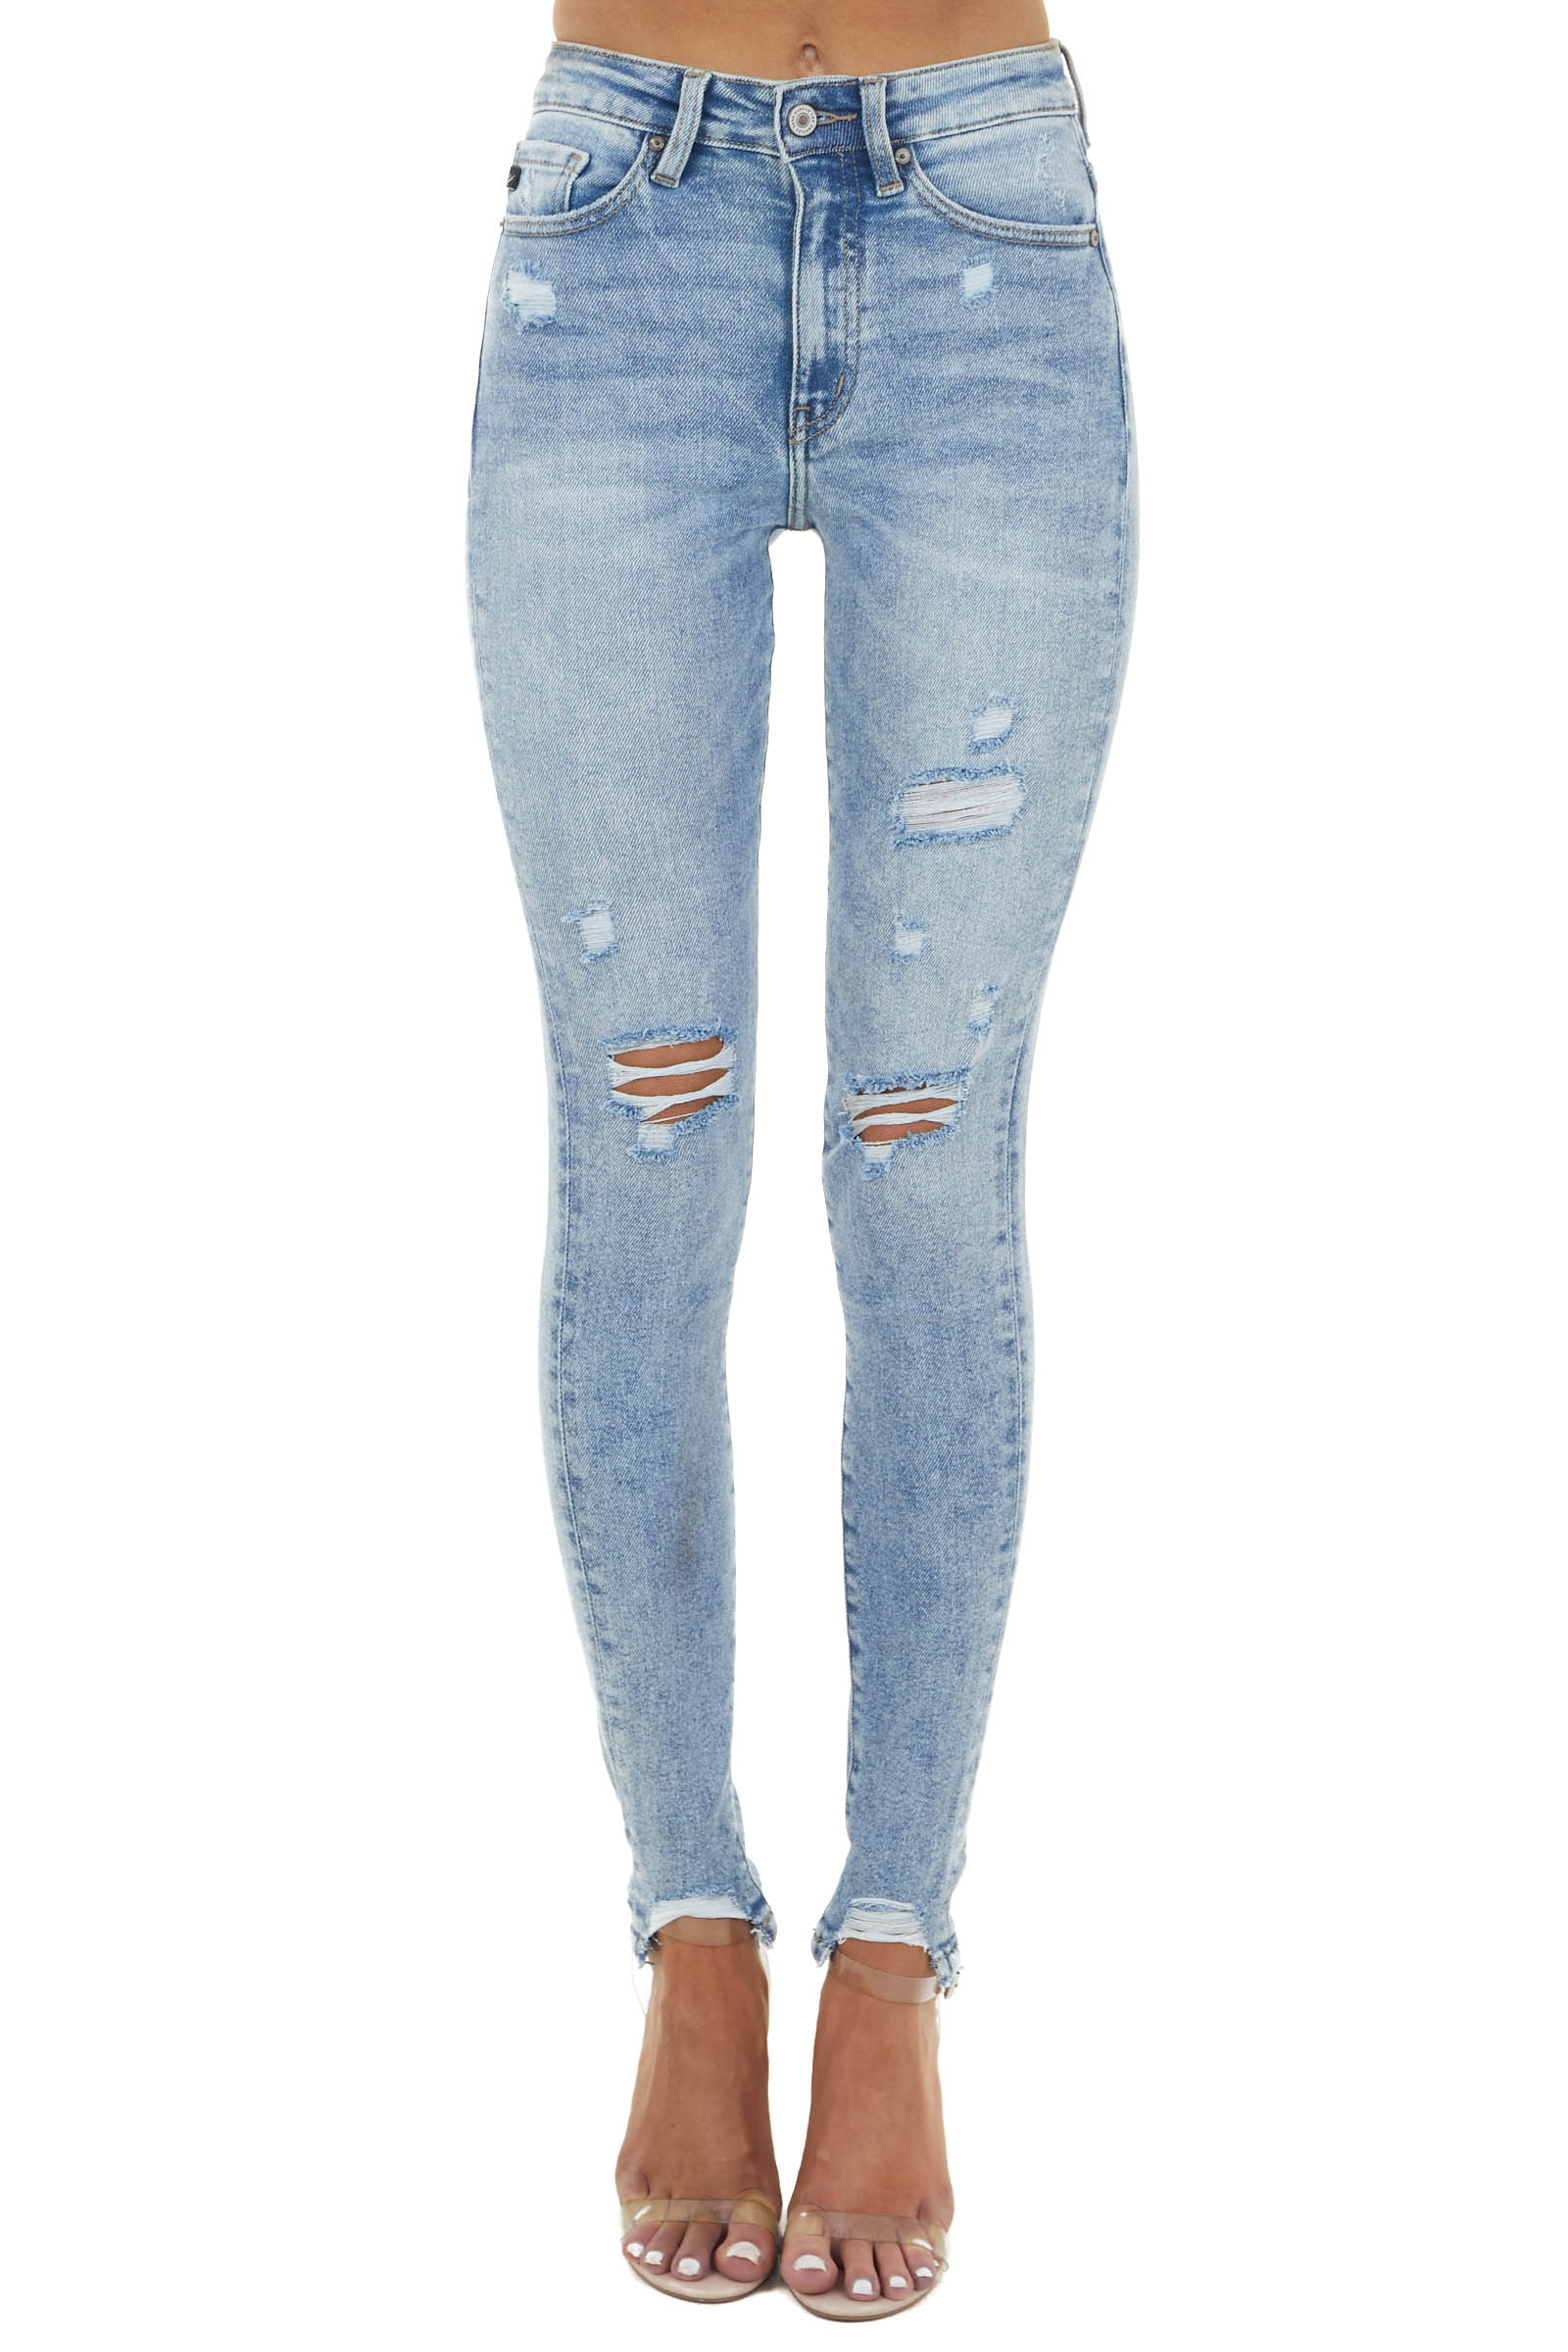 Light Wash High Rise Distressed Skinny Jeans with Cuffs